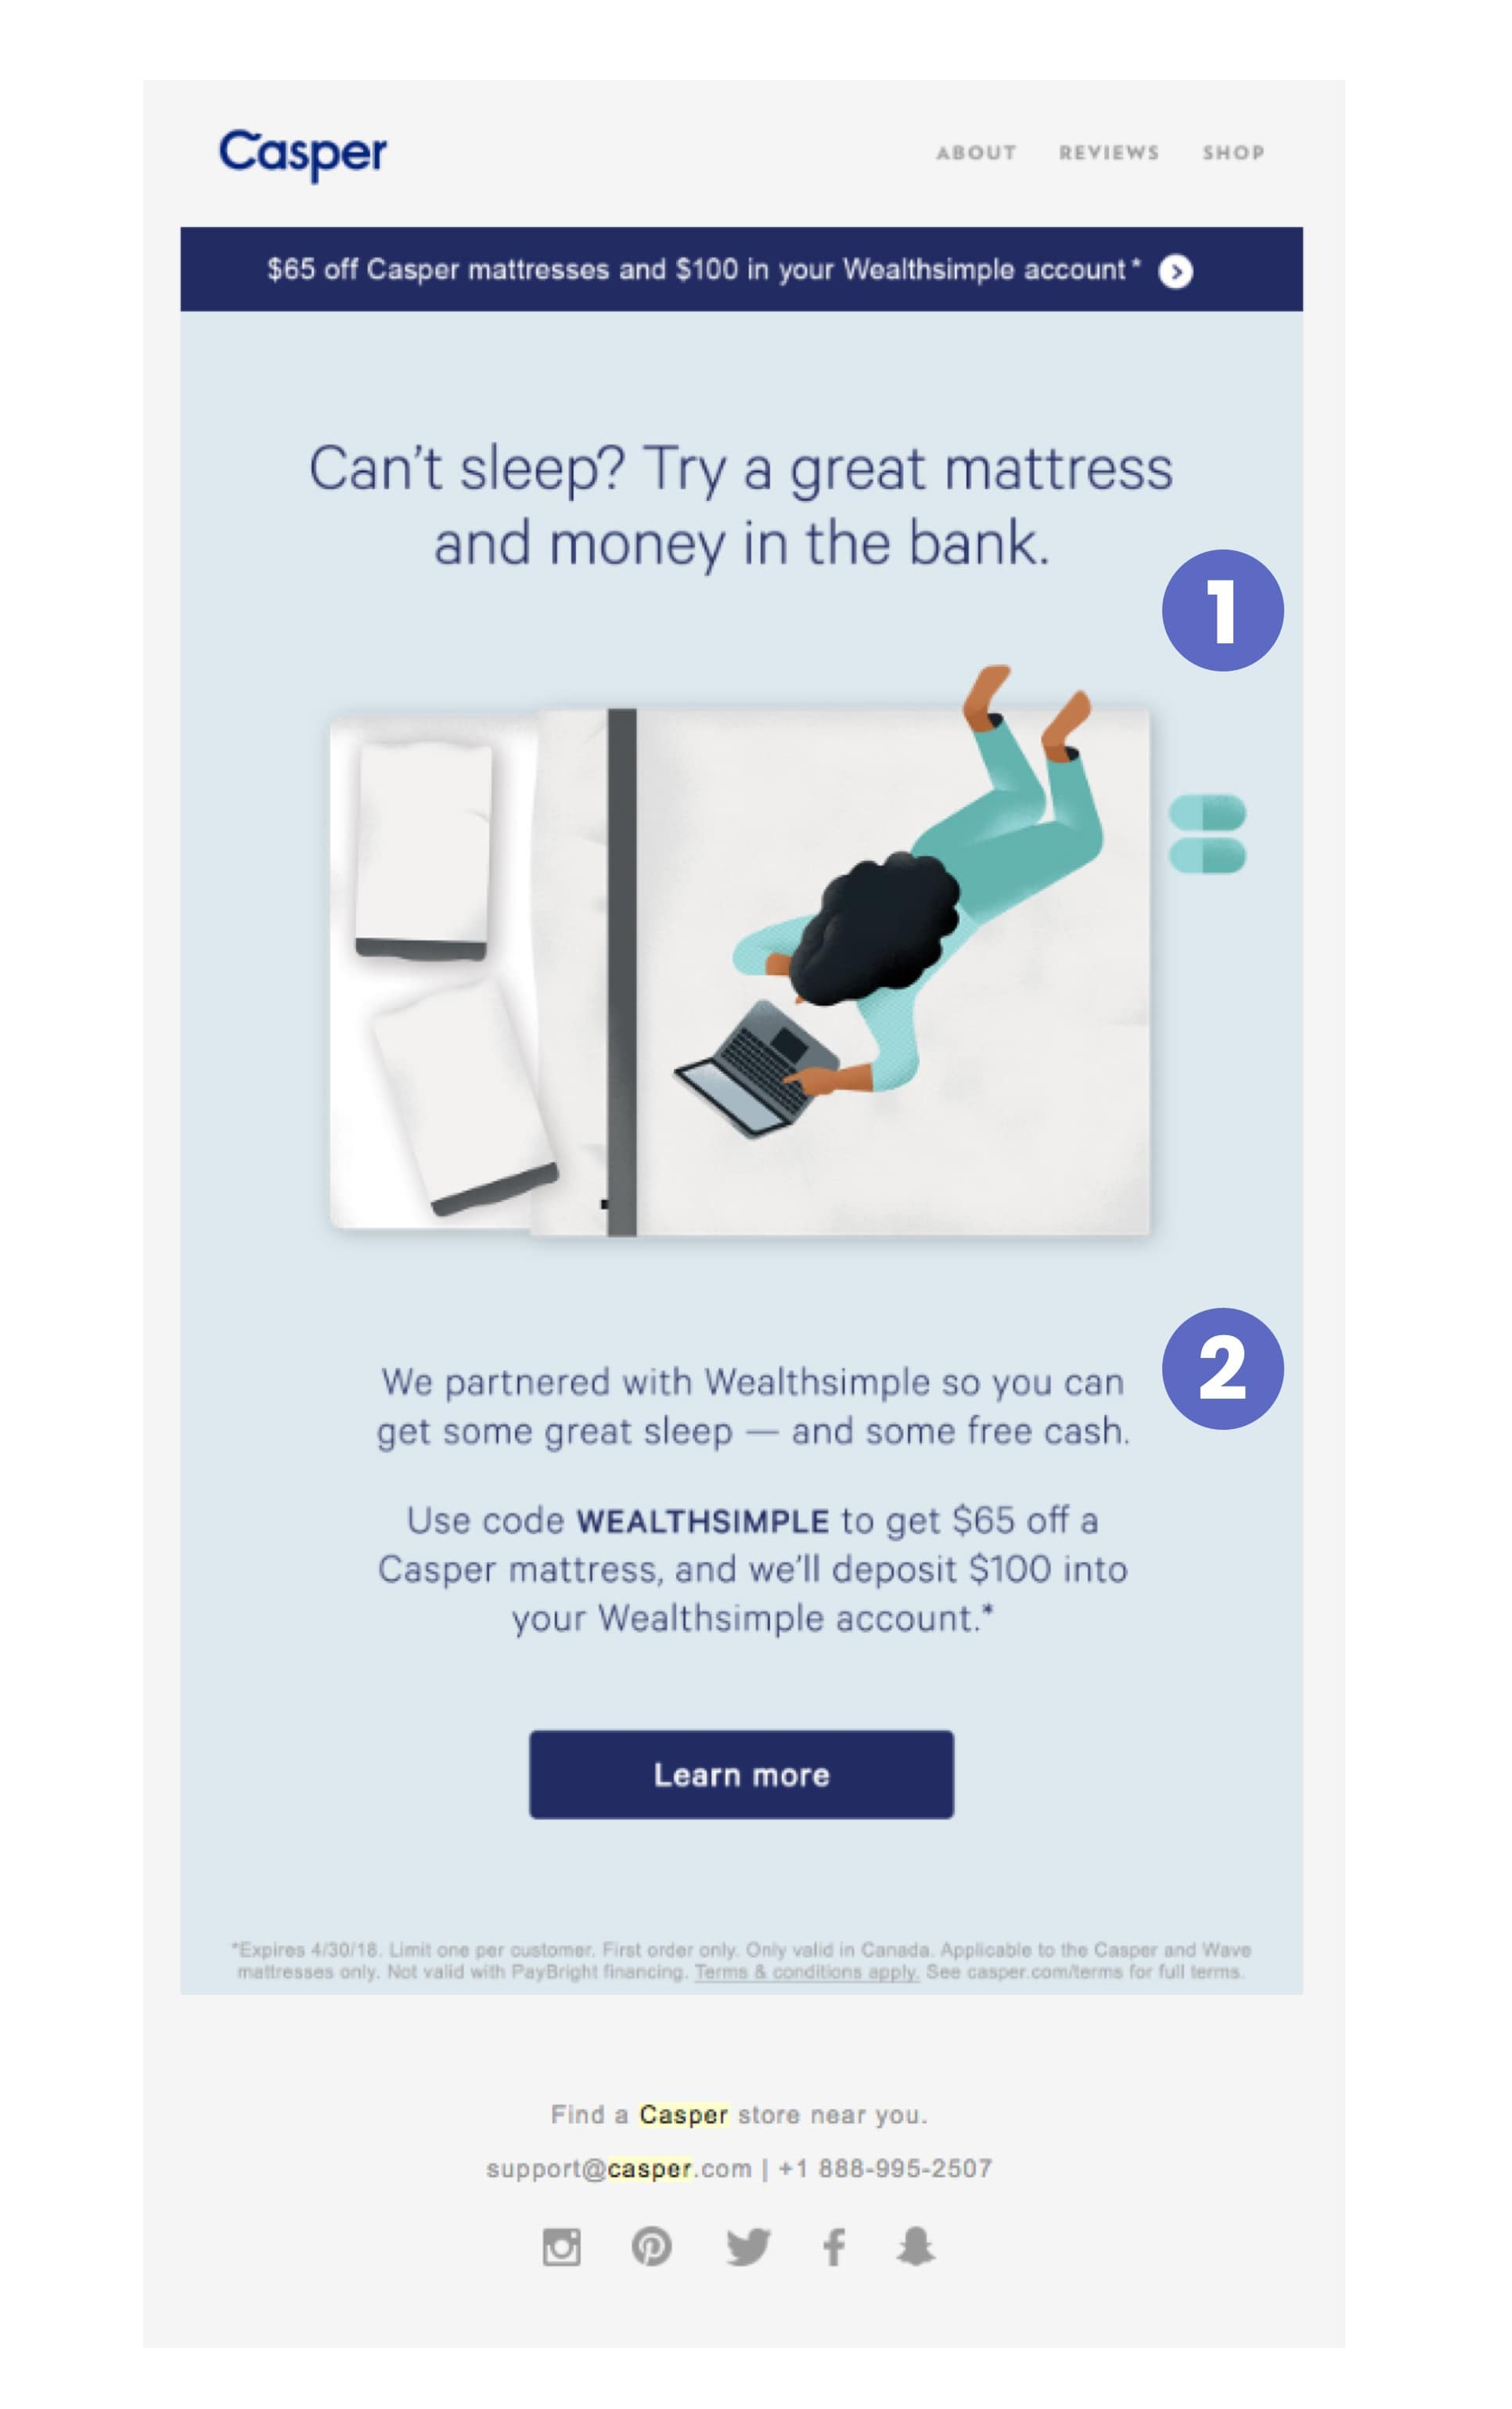 casper partnership with wealthsimple email